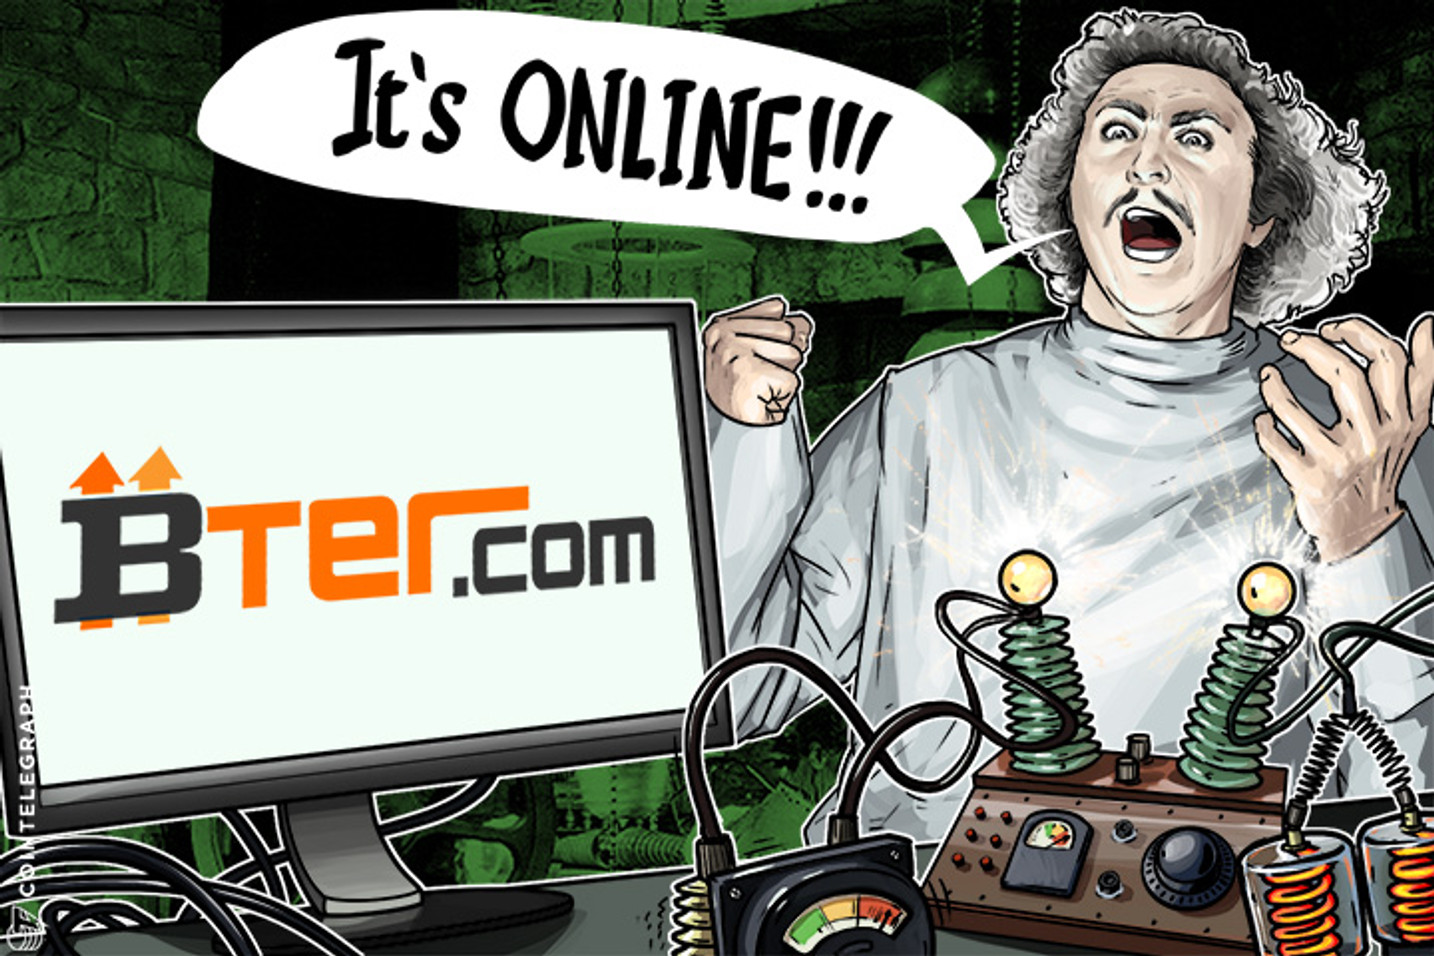 Chinese Bter.com Back Online After Being Down For a Day